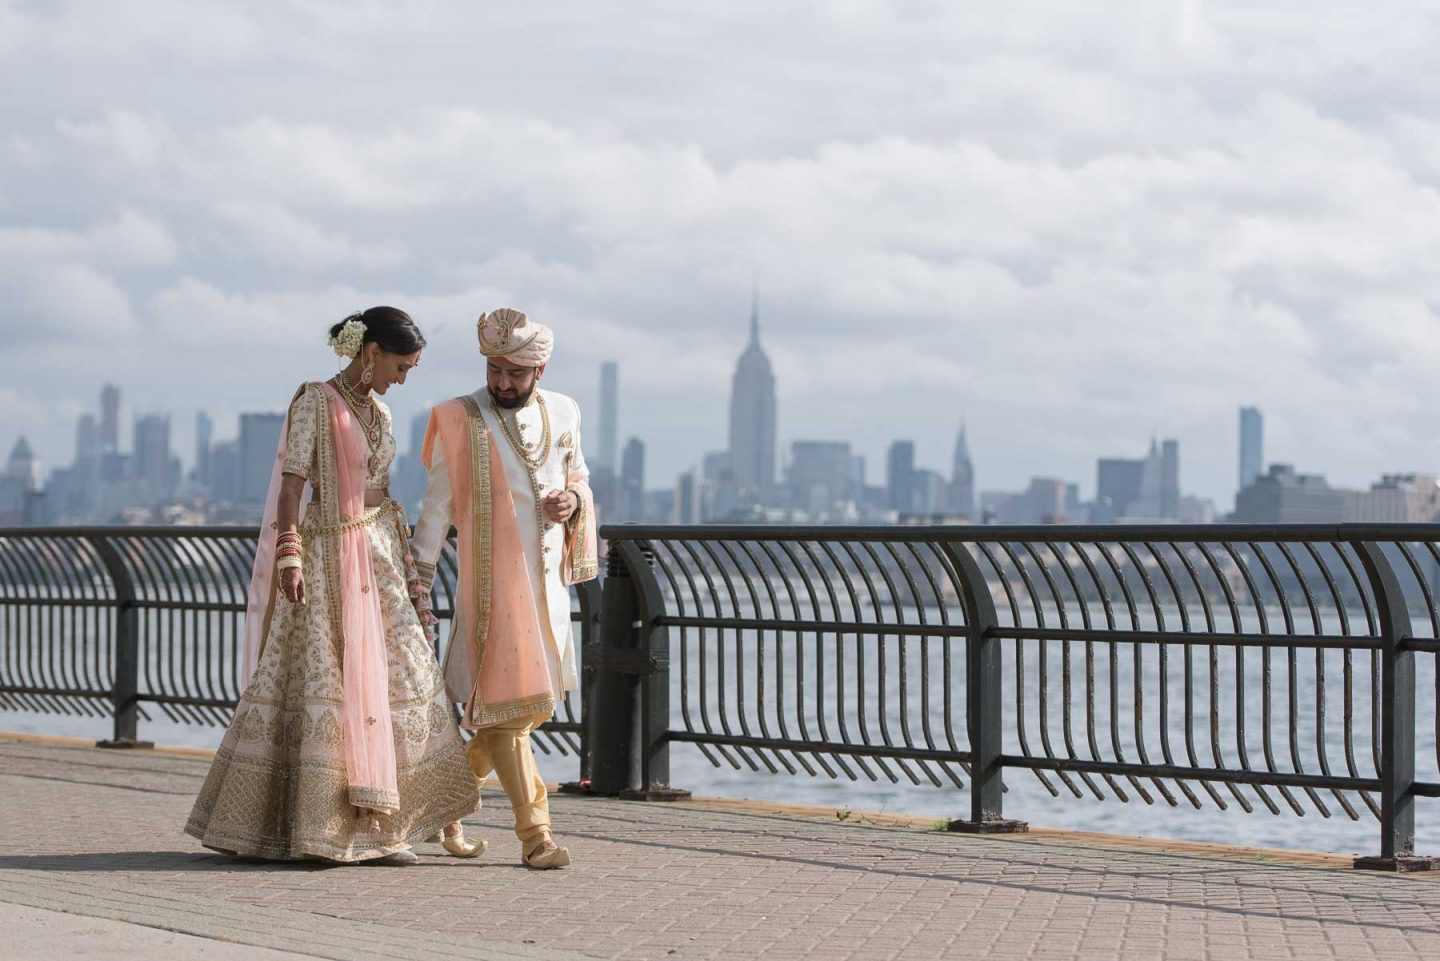 hyatt regency jersey city indian wedding photos